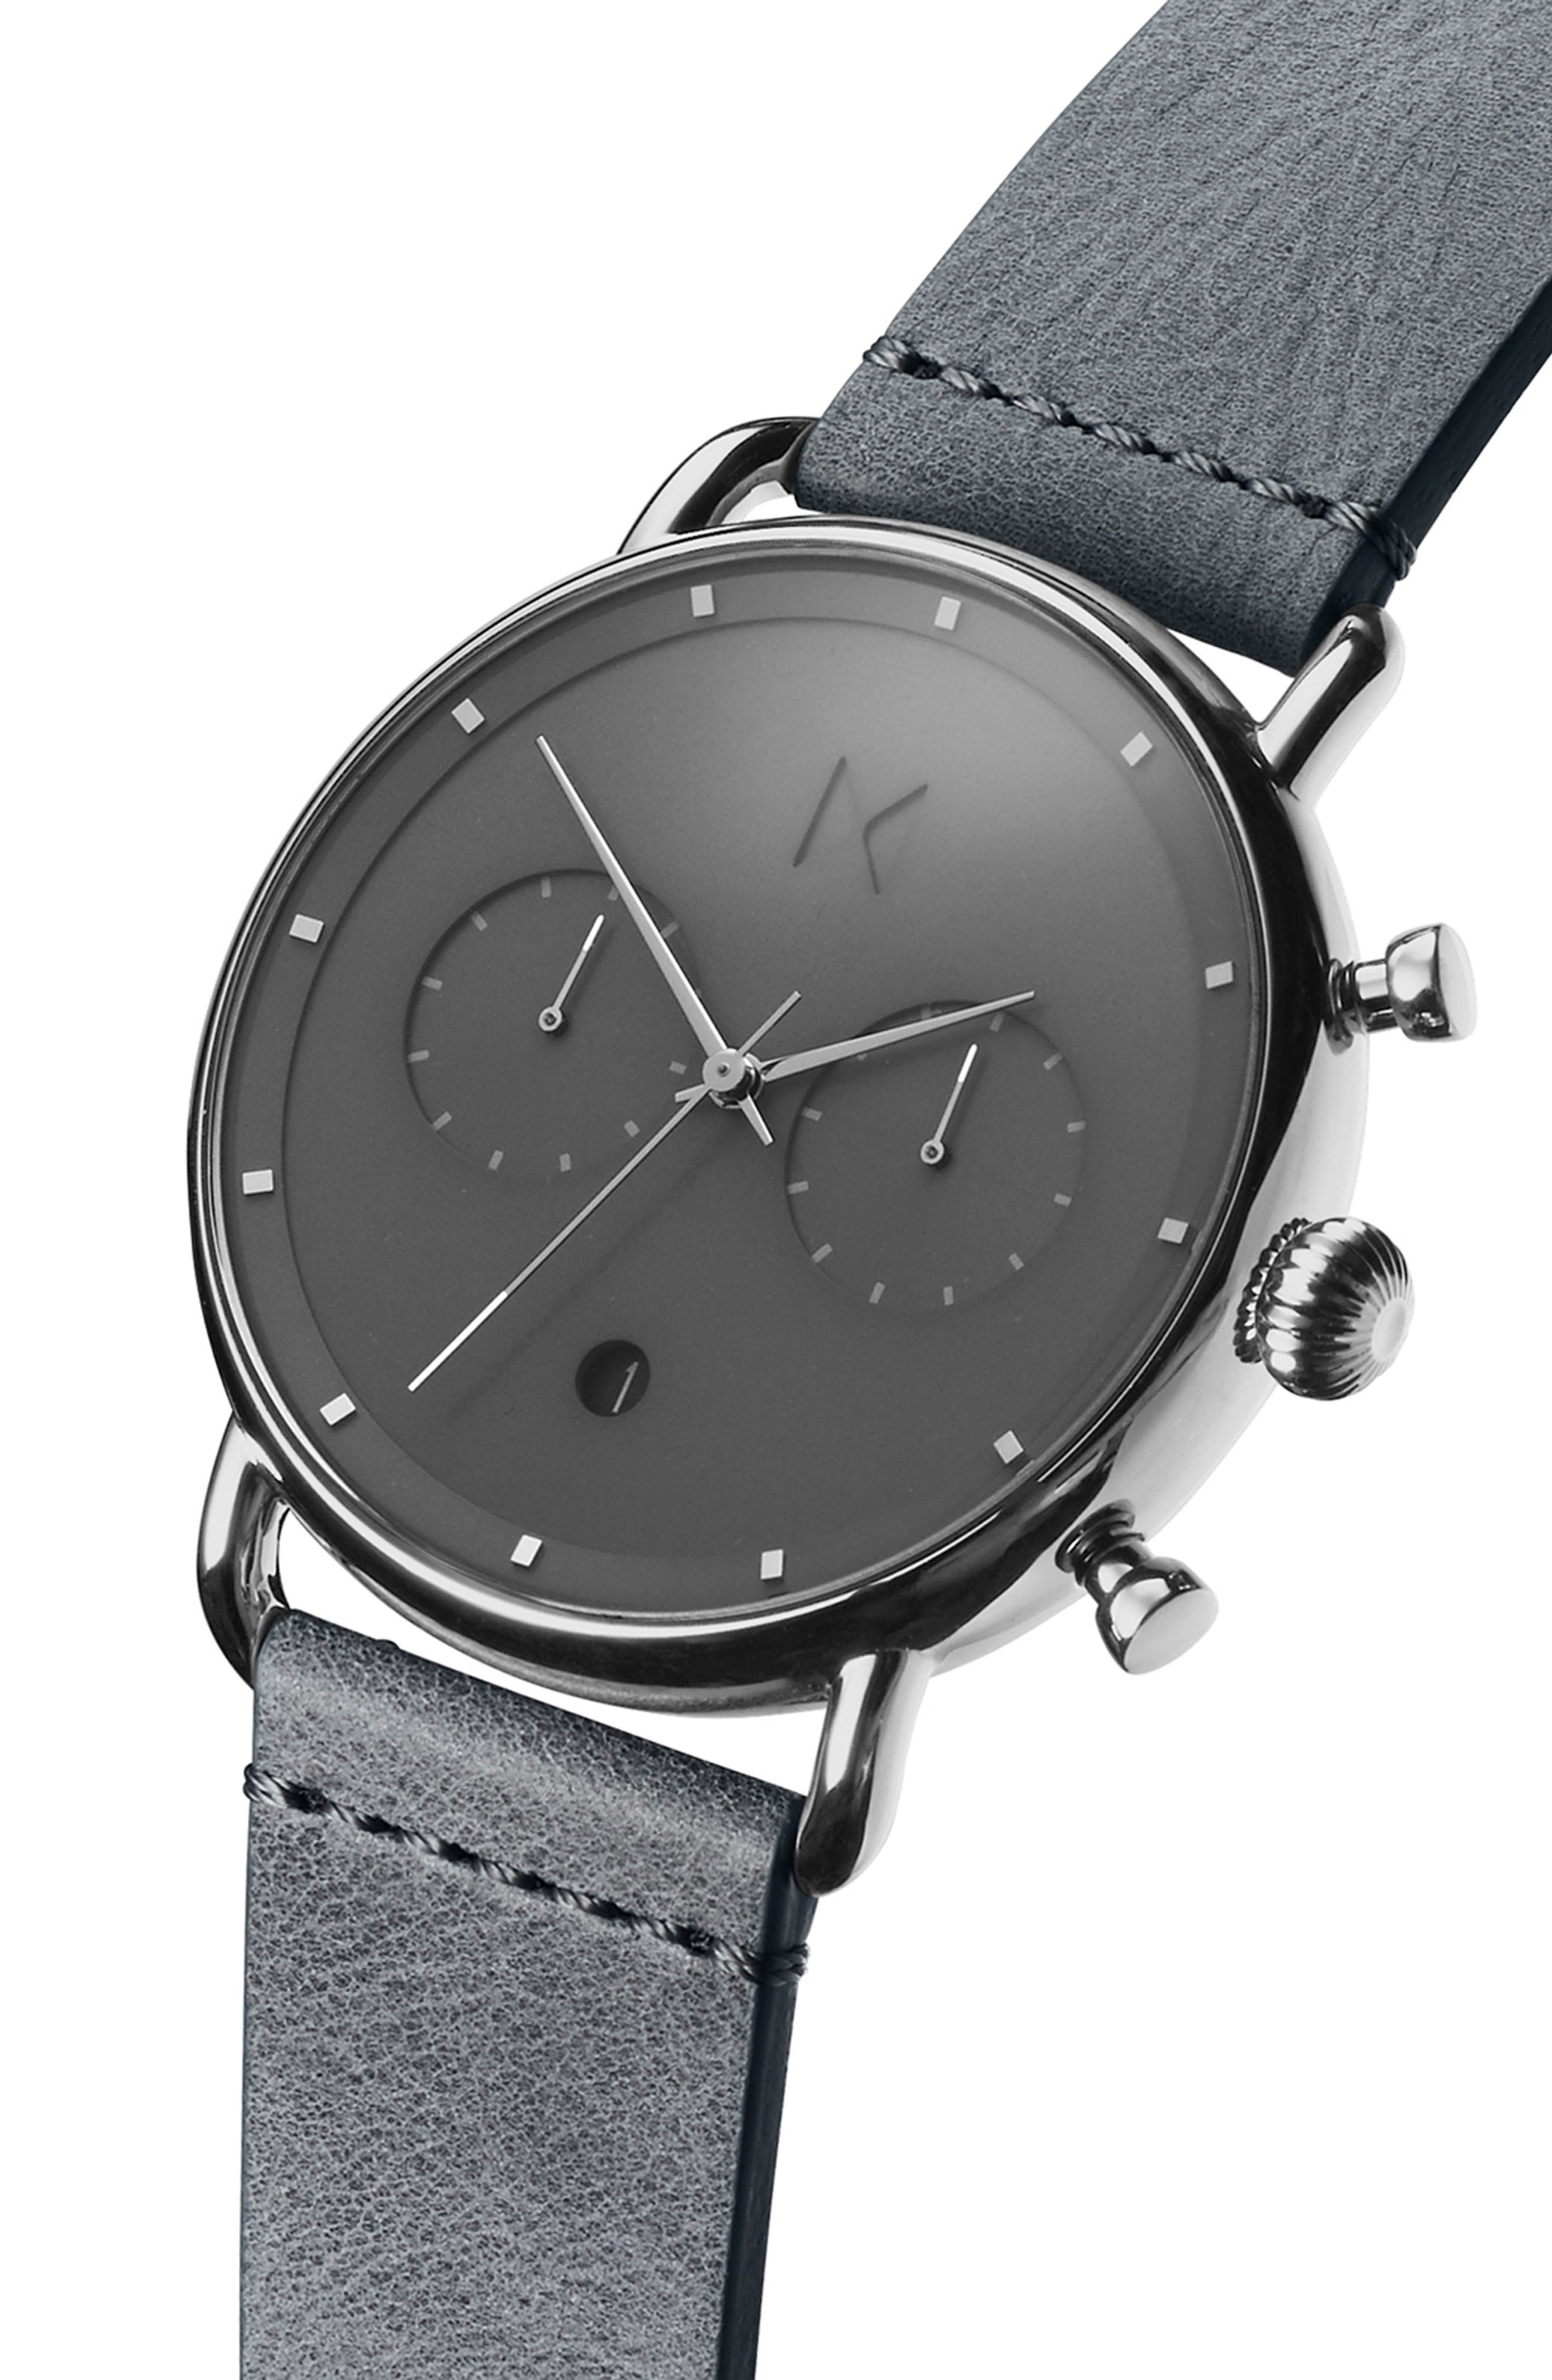 Blacktop Chronograph Leather Strap Watch,                             Alternate thumbnail 3, color,                             GREY/ GREY